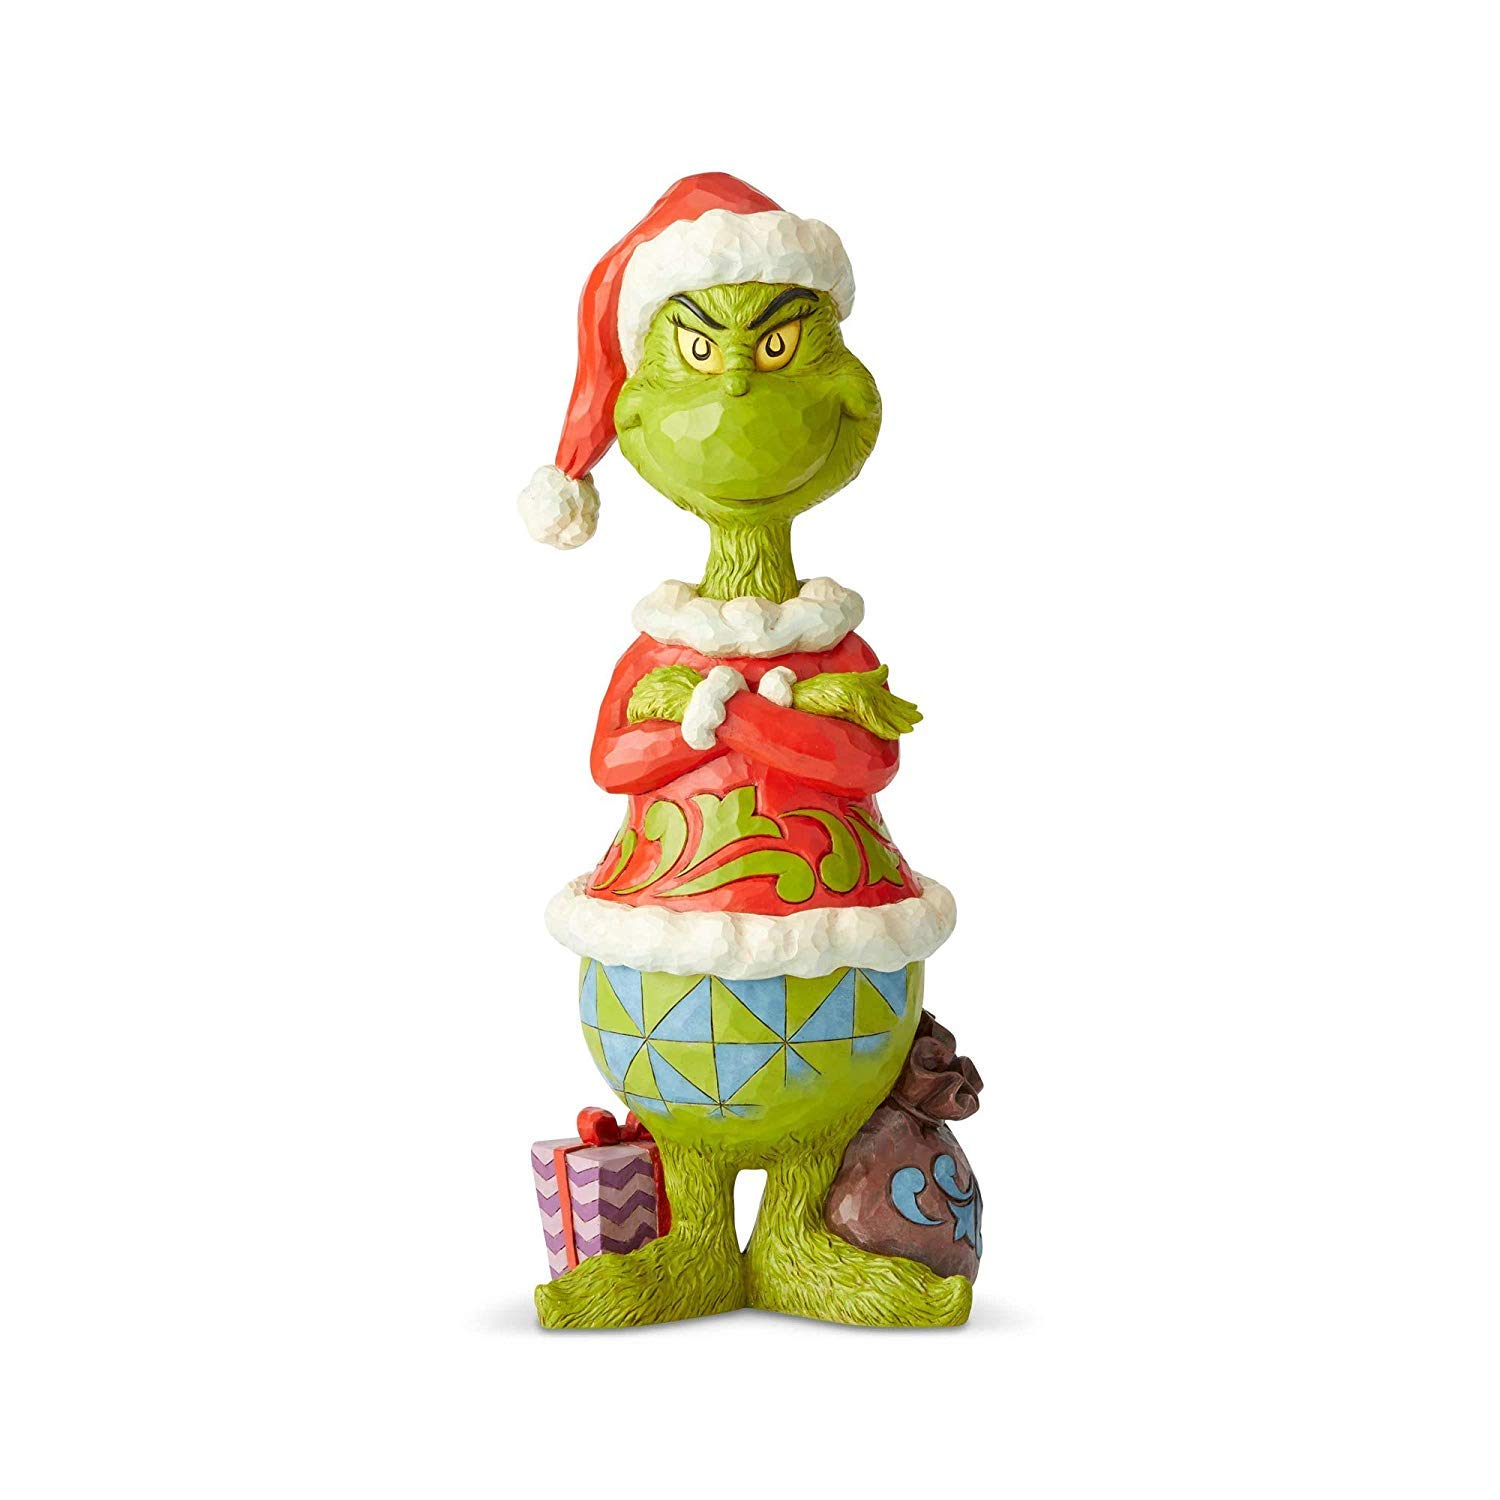 Enesco Grinch by Jim Shore Grinch Statue with Arms Folded Statue, 20''     by Enesco